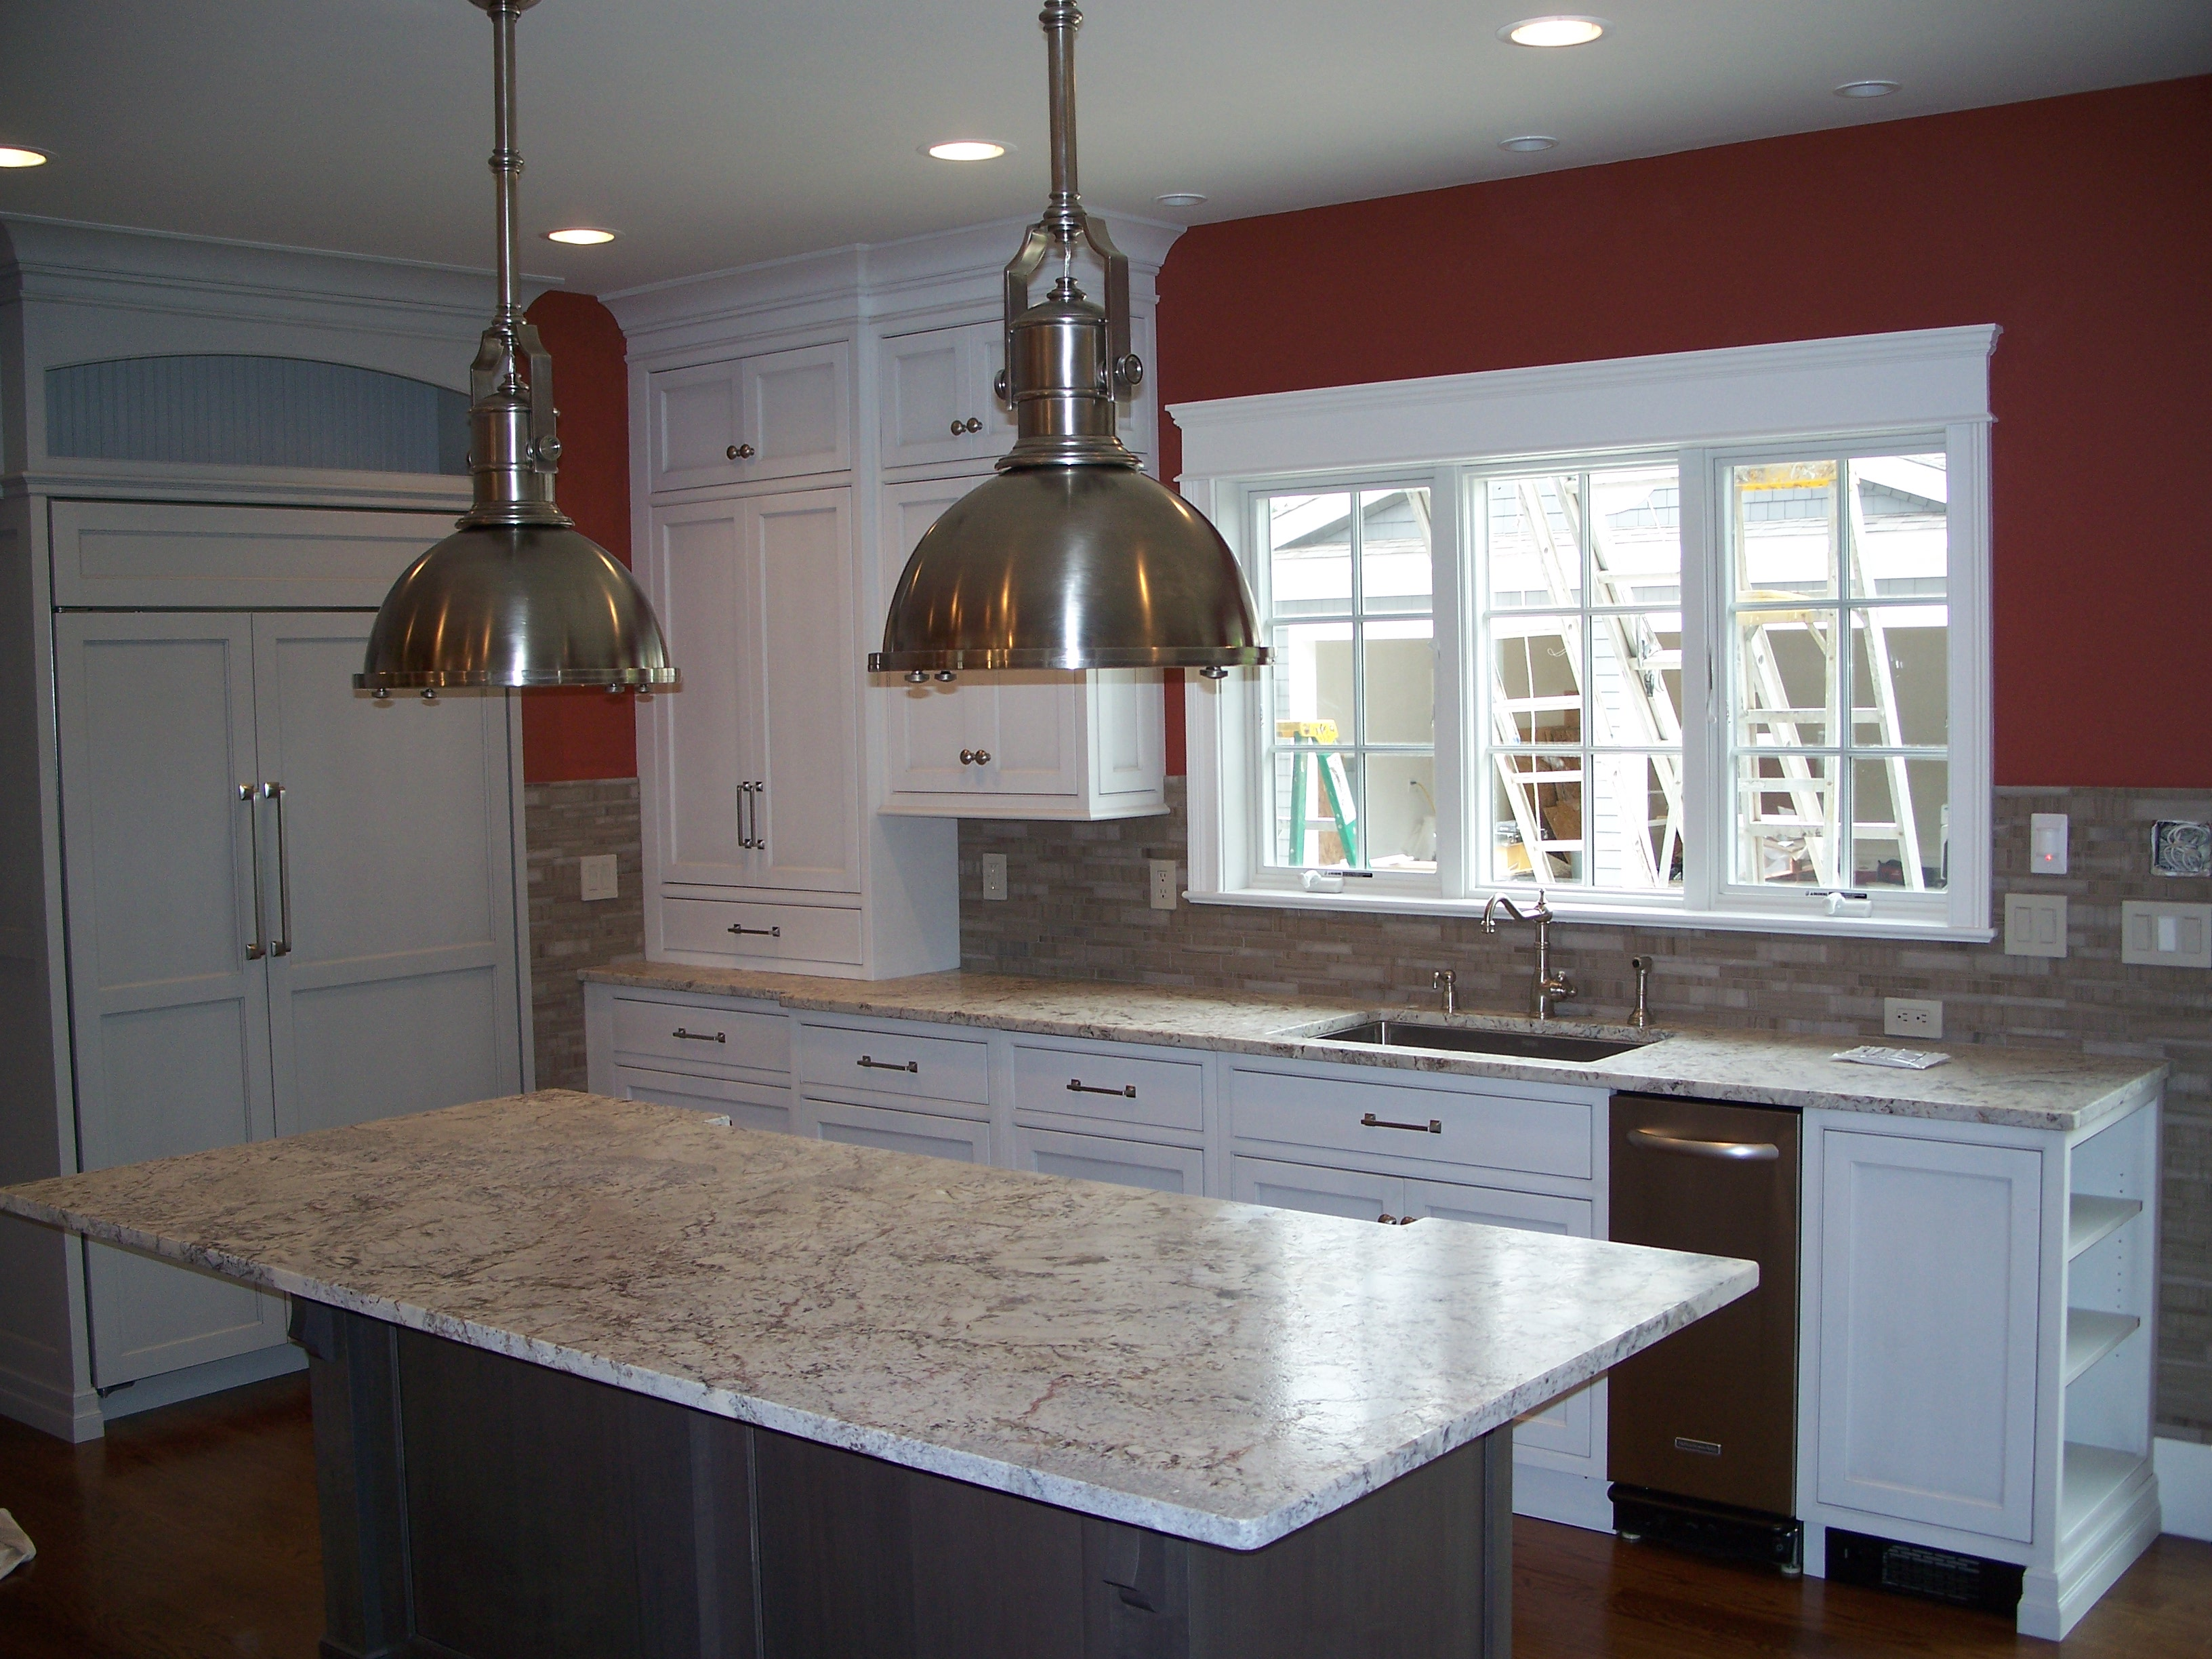 White Spring Leathered Finish Granite Kitchen Countertops ...